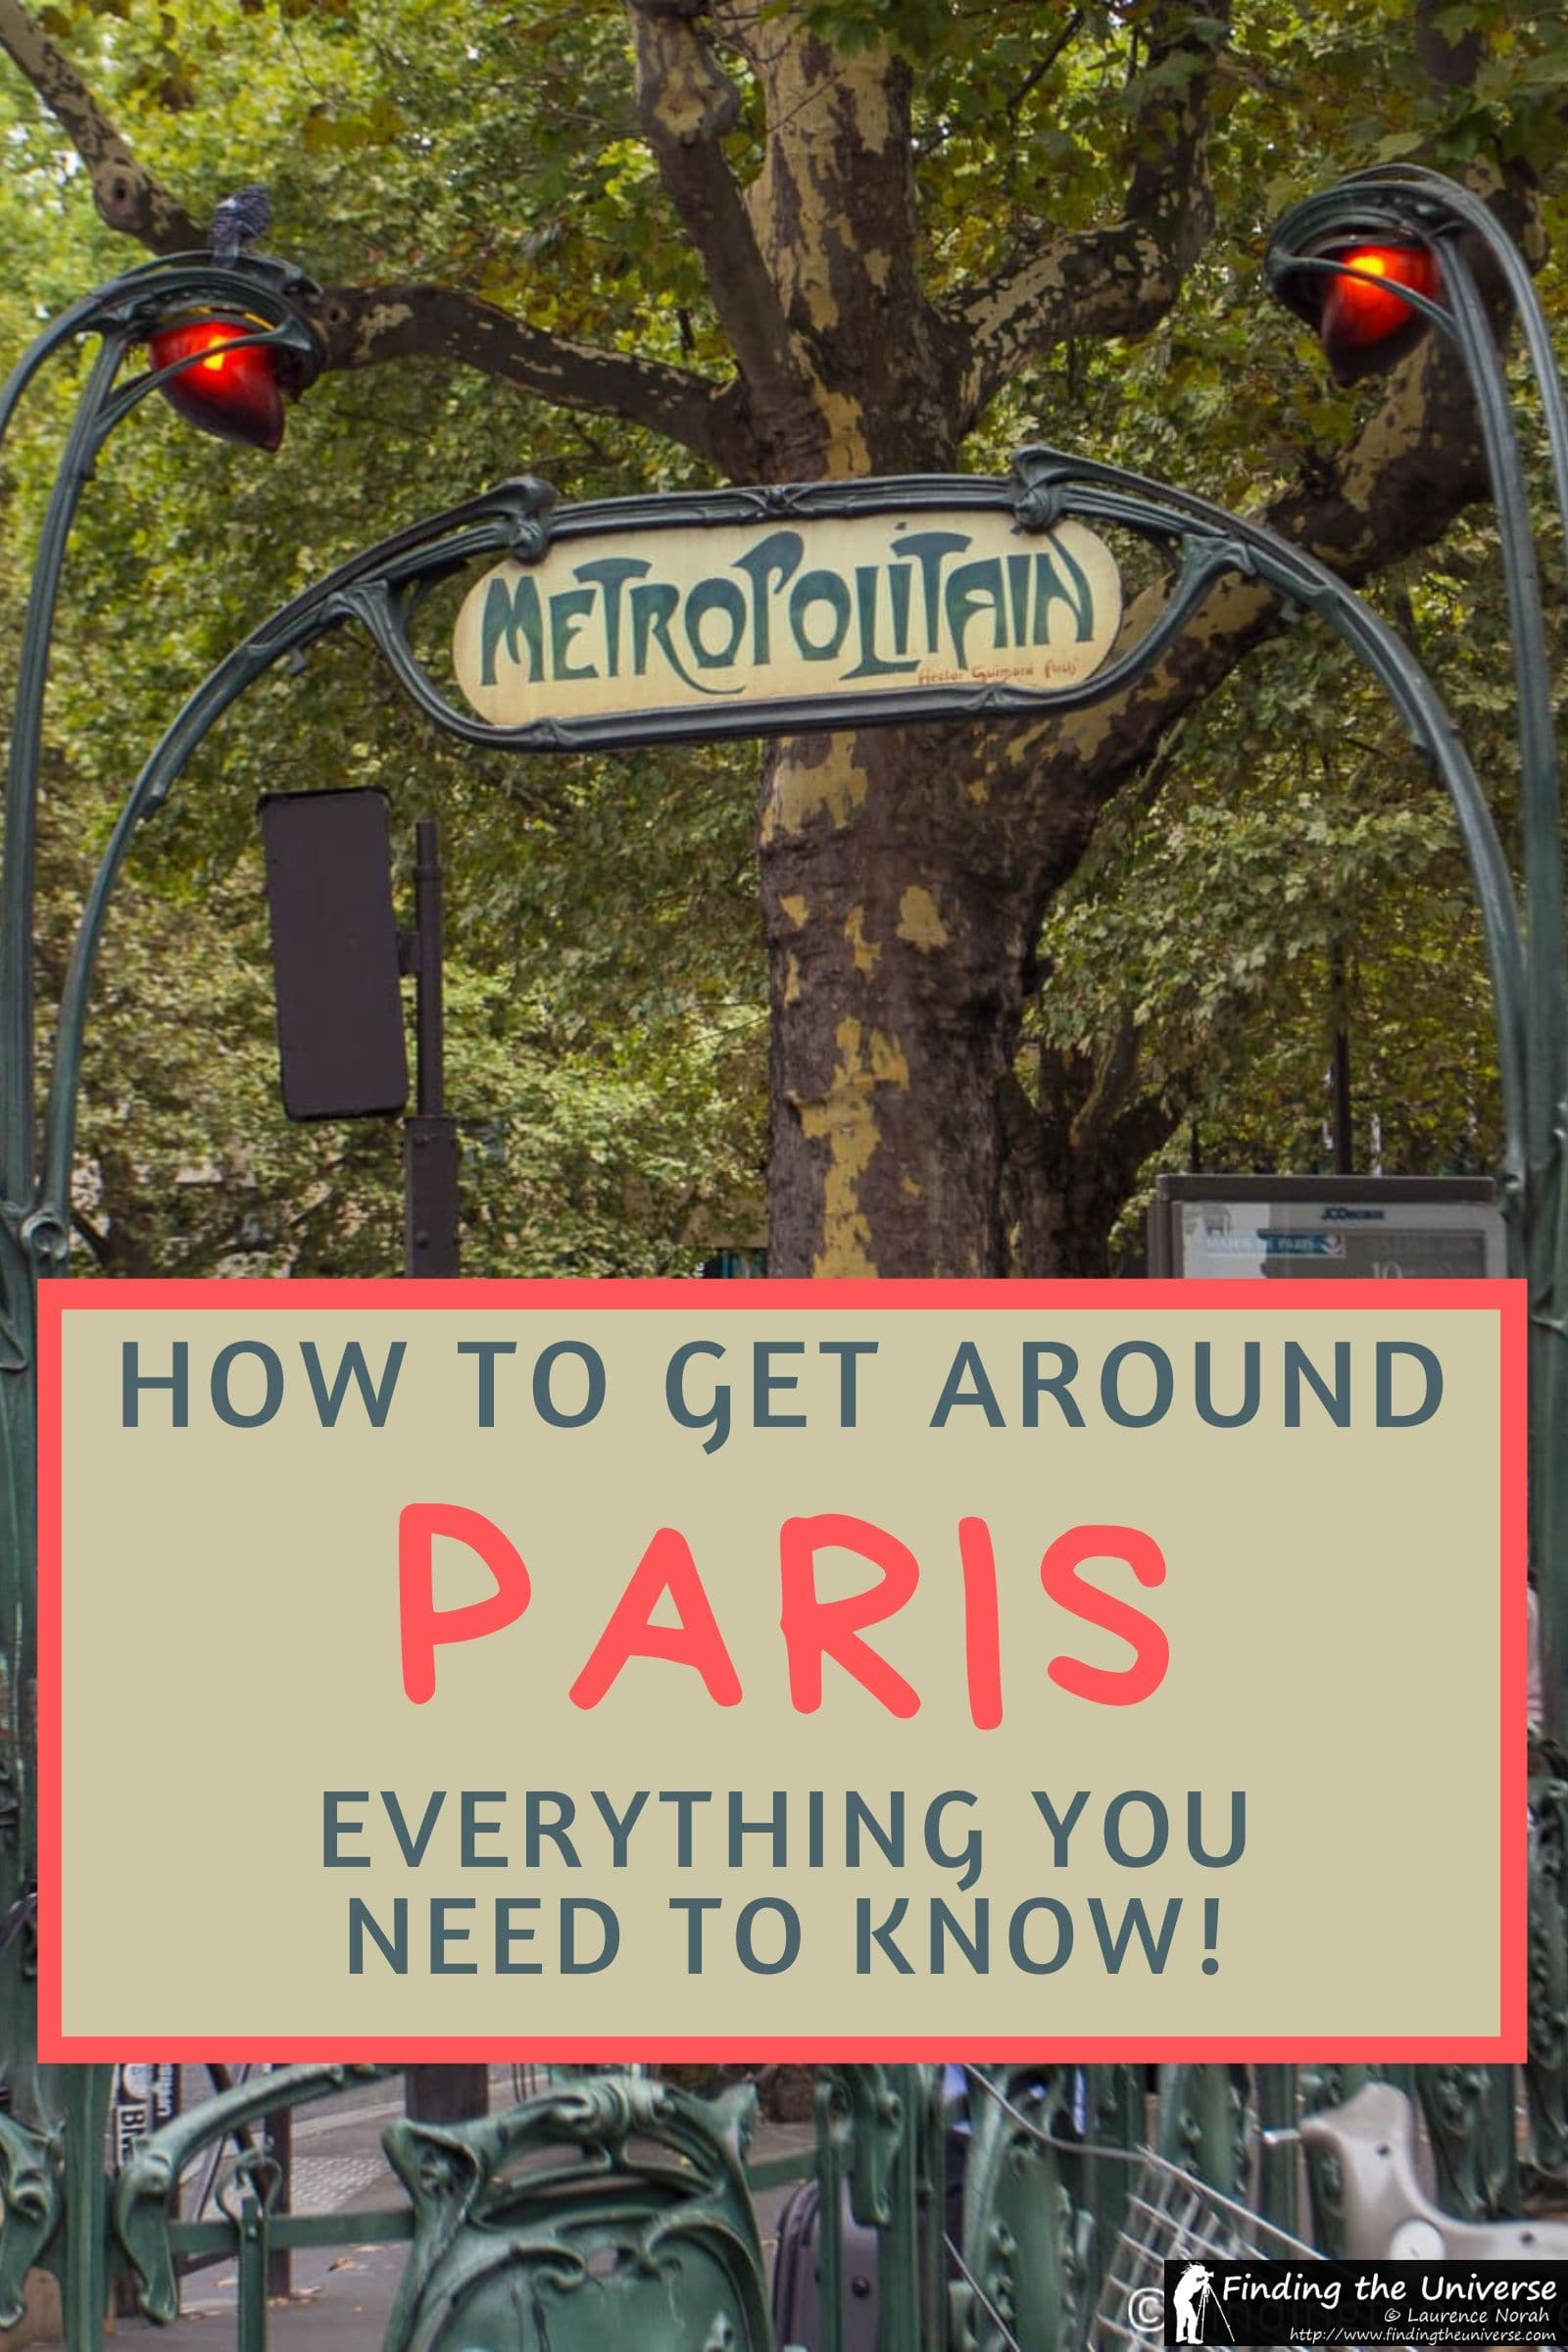 A detailed guide to how to get around Paris, including all the public and private transport options in Paris. Covers metro, rail, bikes, car etc...